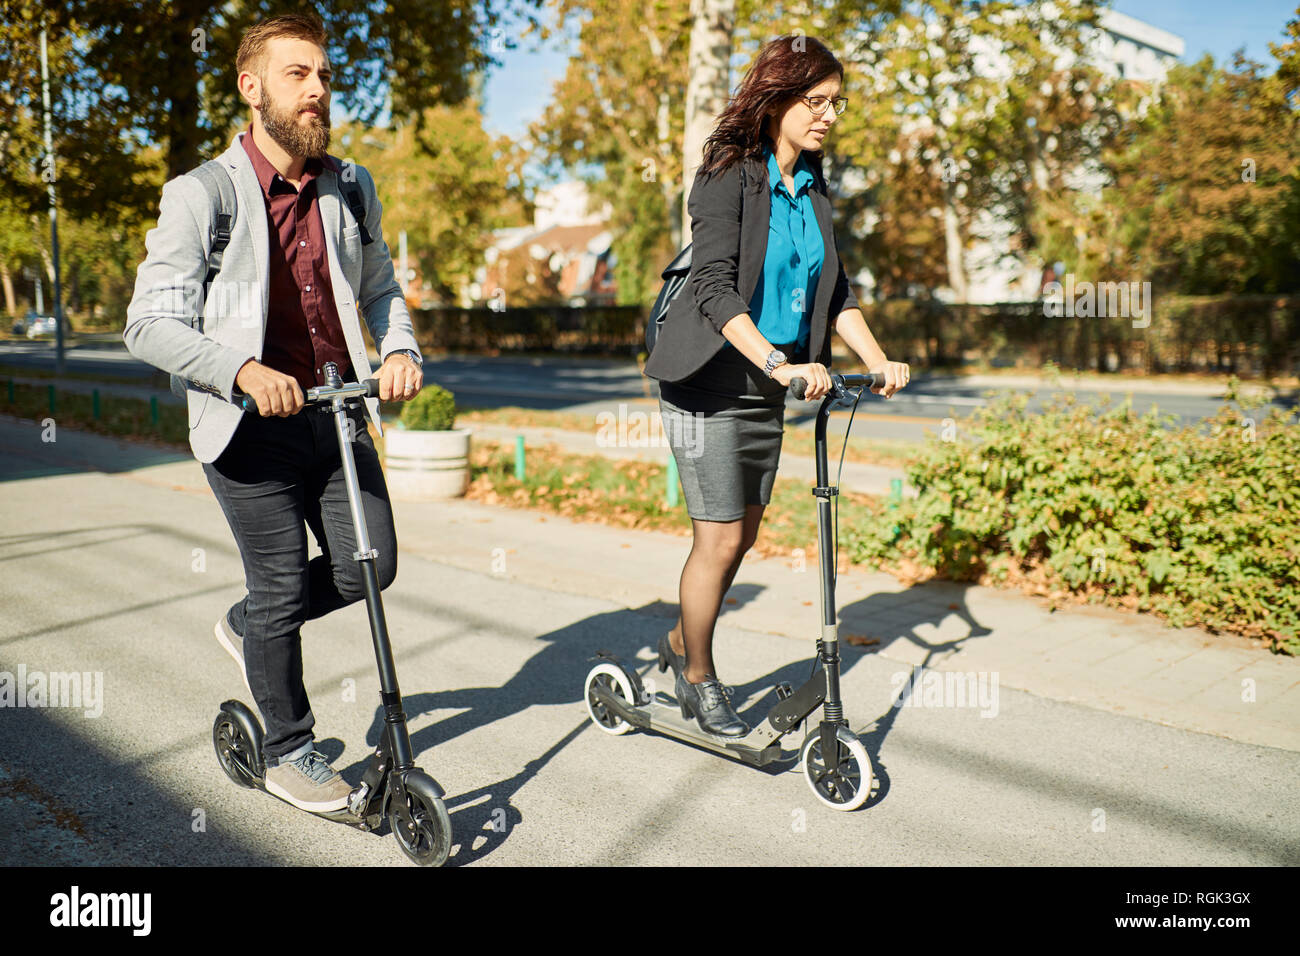 Businessman and businesswoman riding scooter Stock Photo